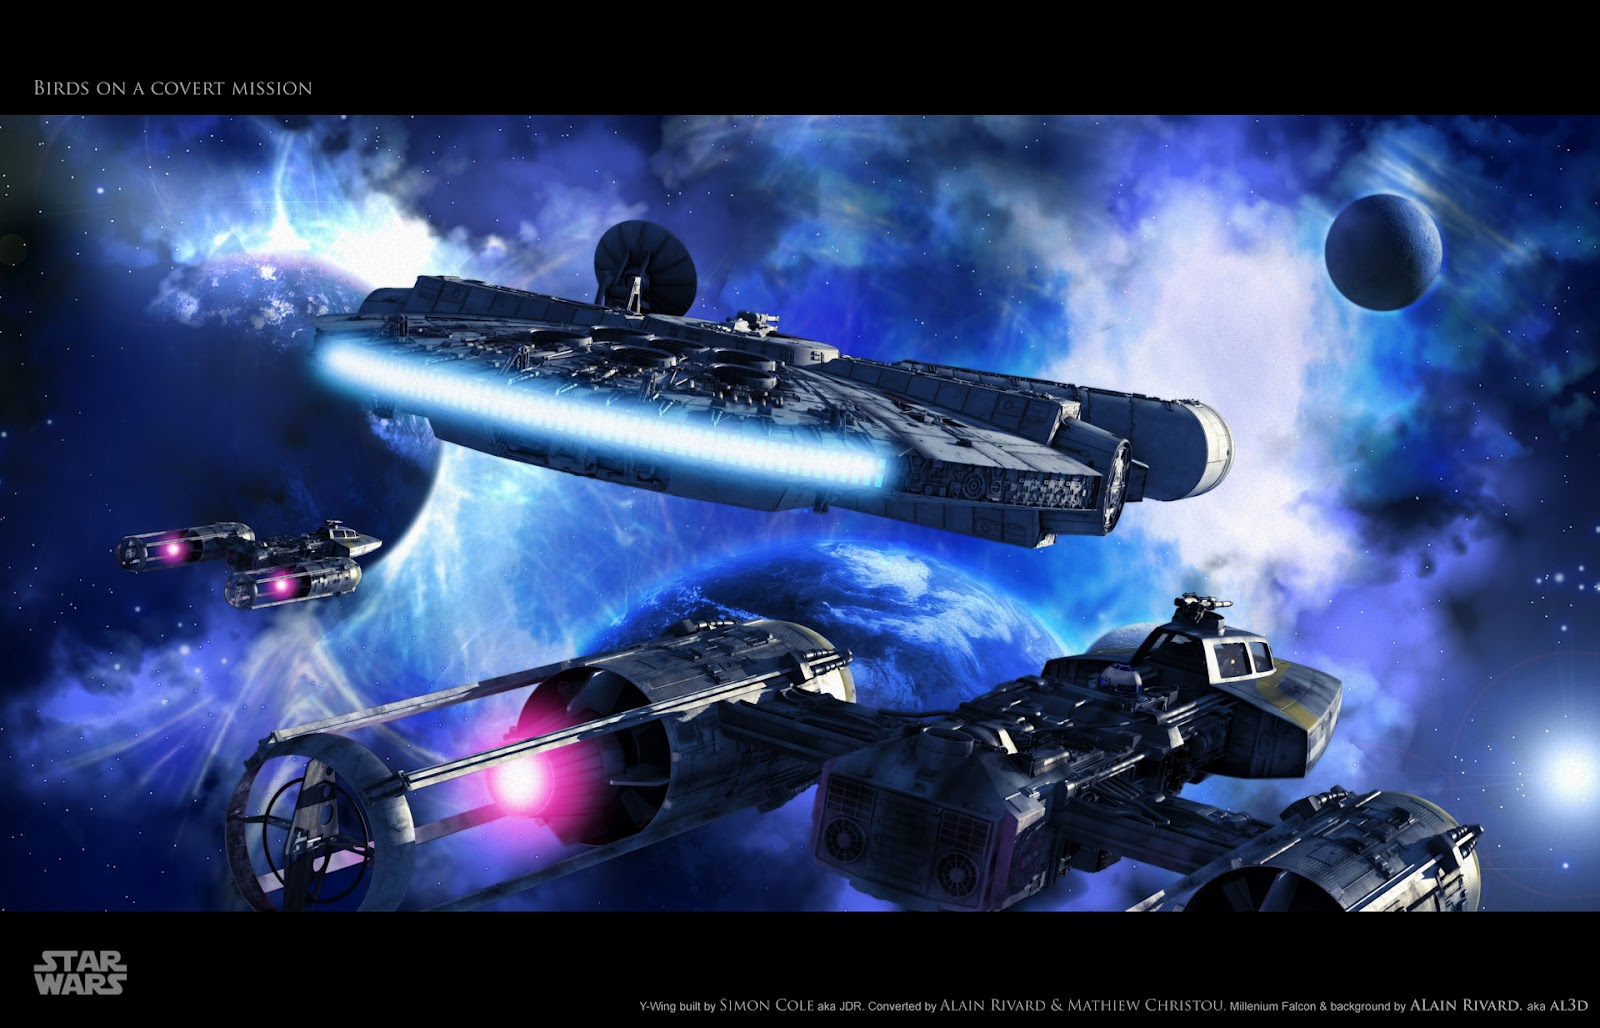 STAR WARS HD PICTURES ~ HD WALLPAPERS